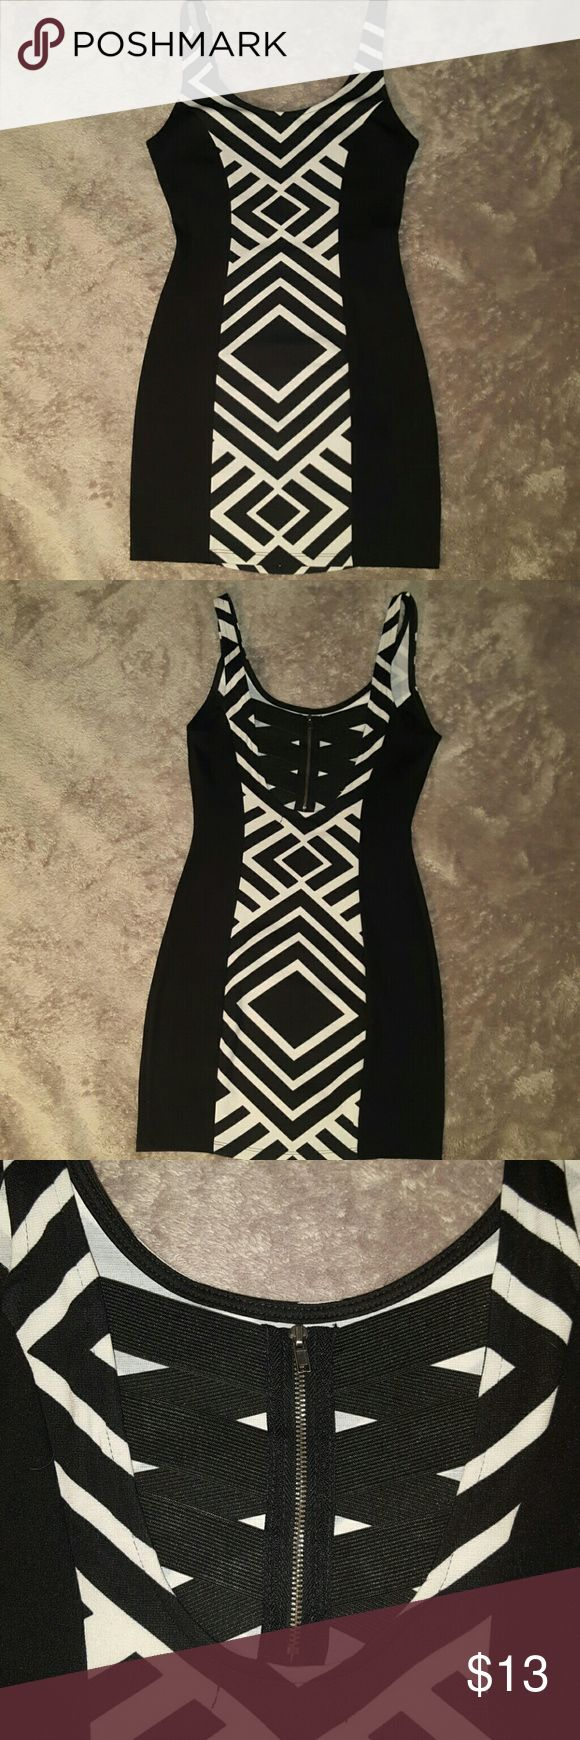 Black and white mini dress Material Girl Trendy print. Never worn. Perfect condition. Cute back scrappy detail where the dress zips up. Bundle and save! Material Girl Dresses Mini